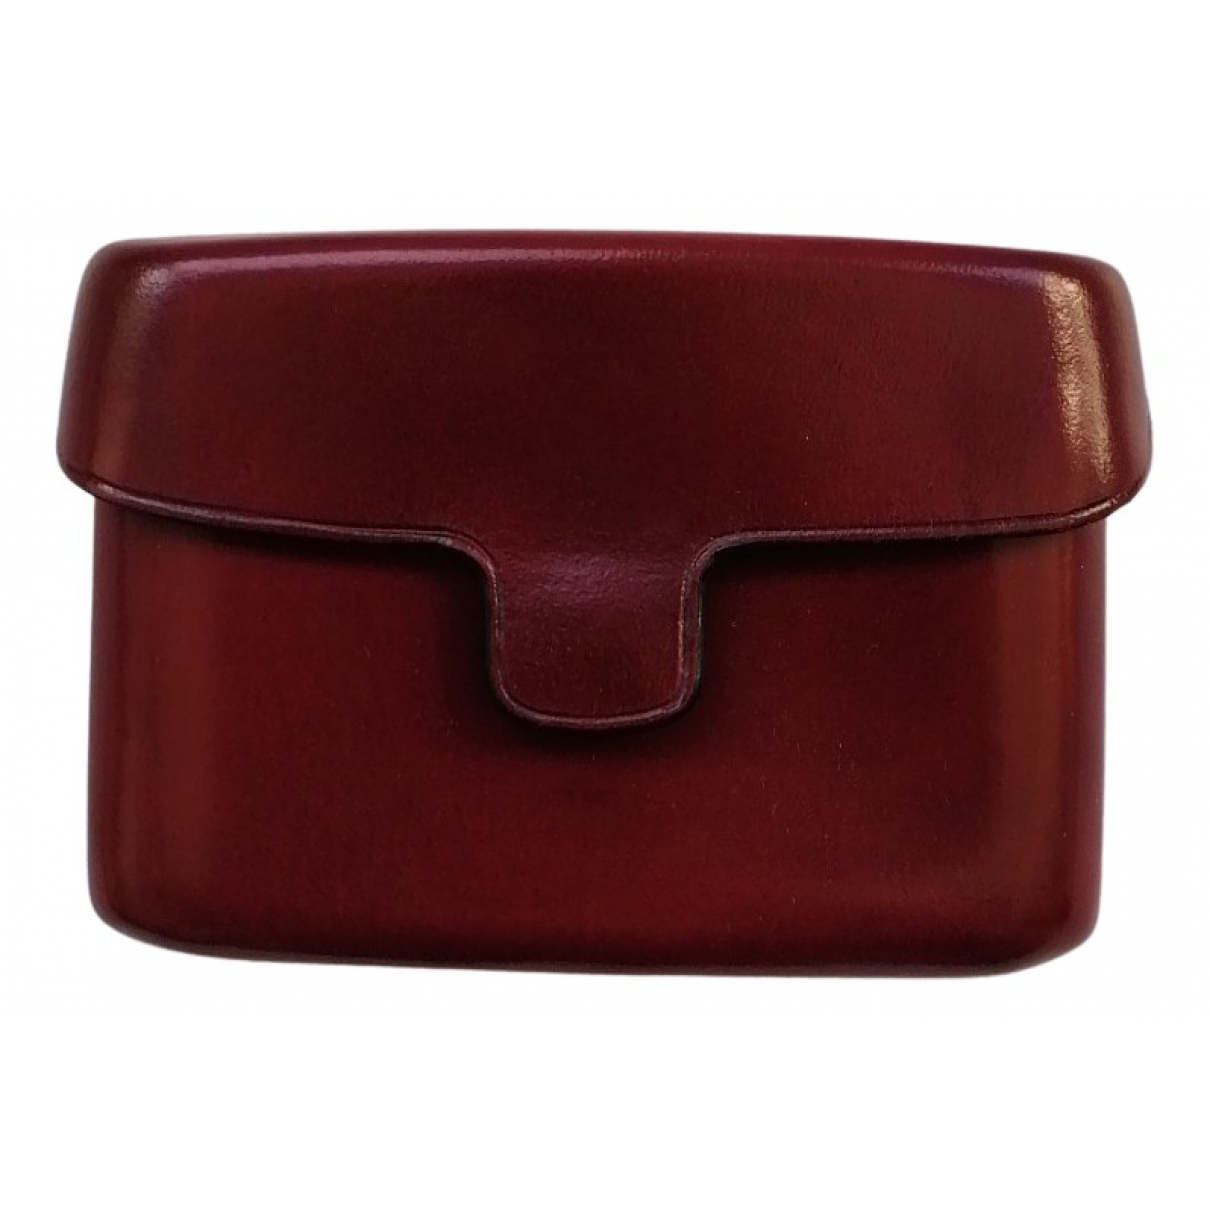 Lemaire N Burgundy Leather Purses, wallet & cases for Women N